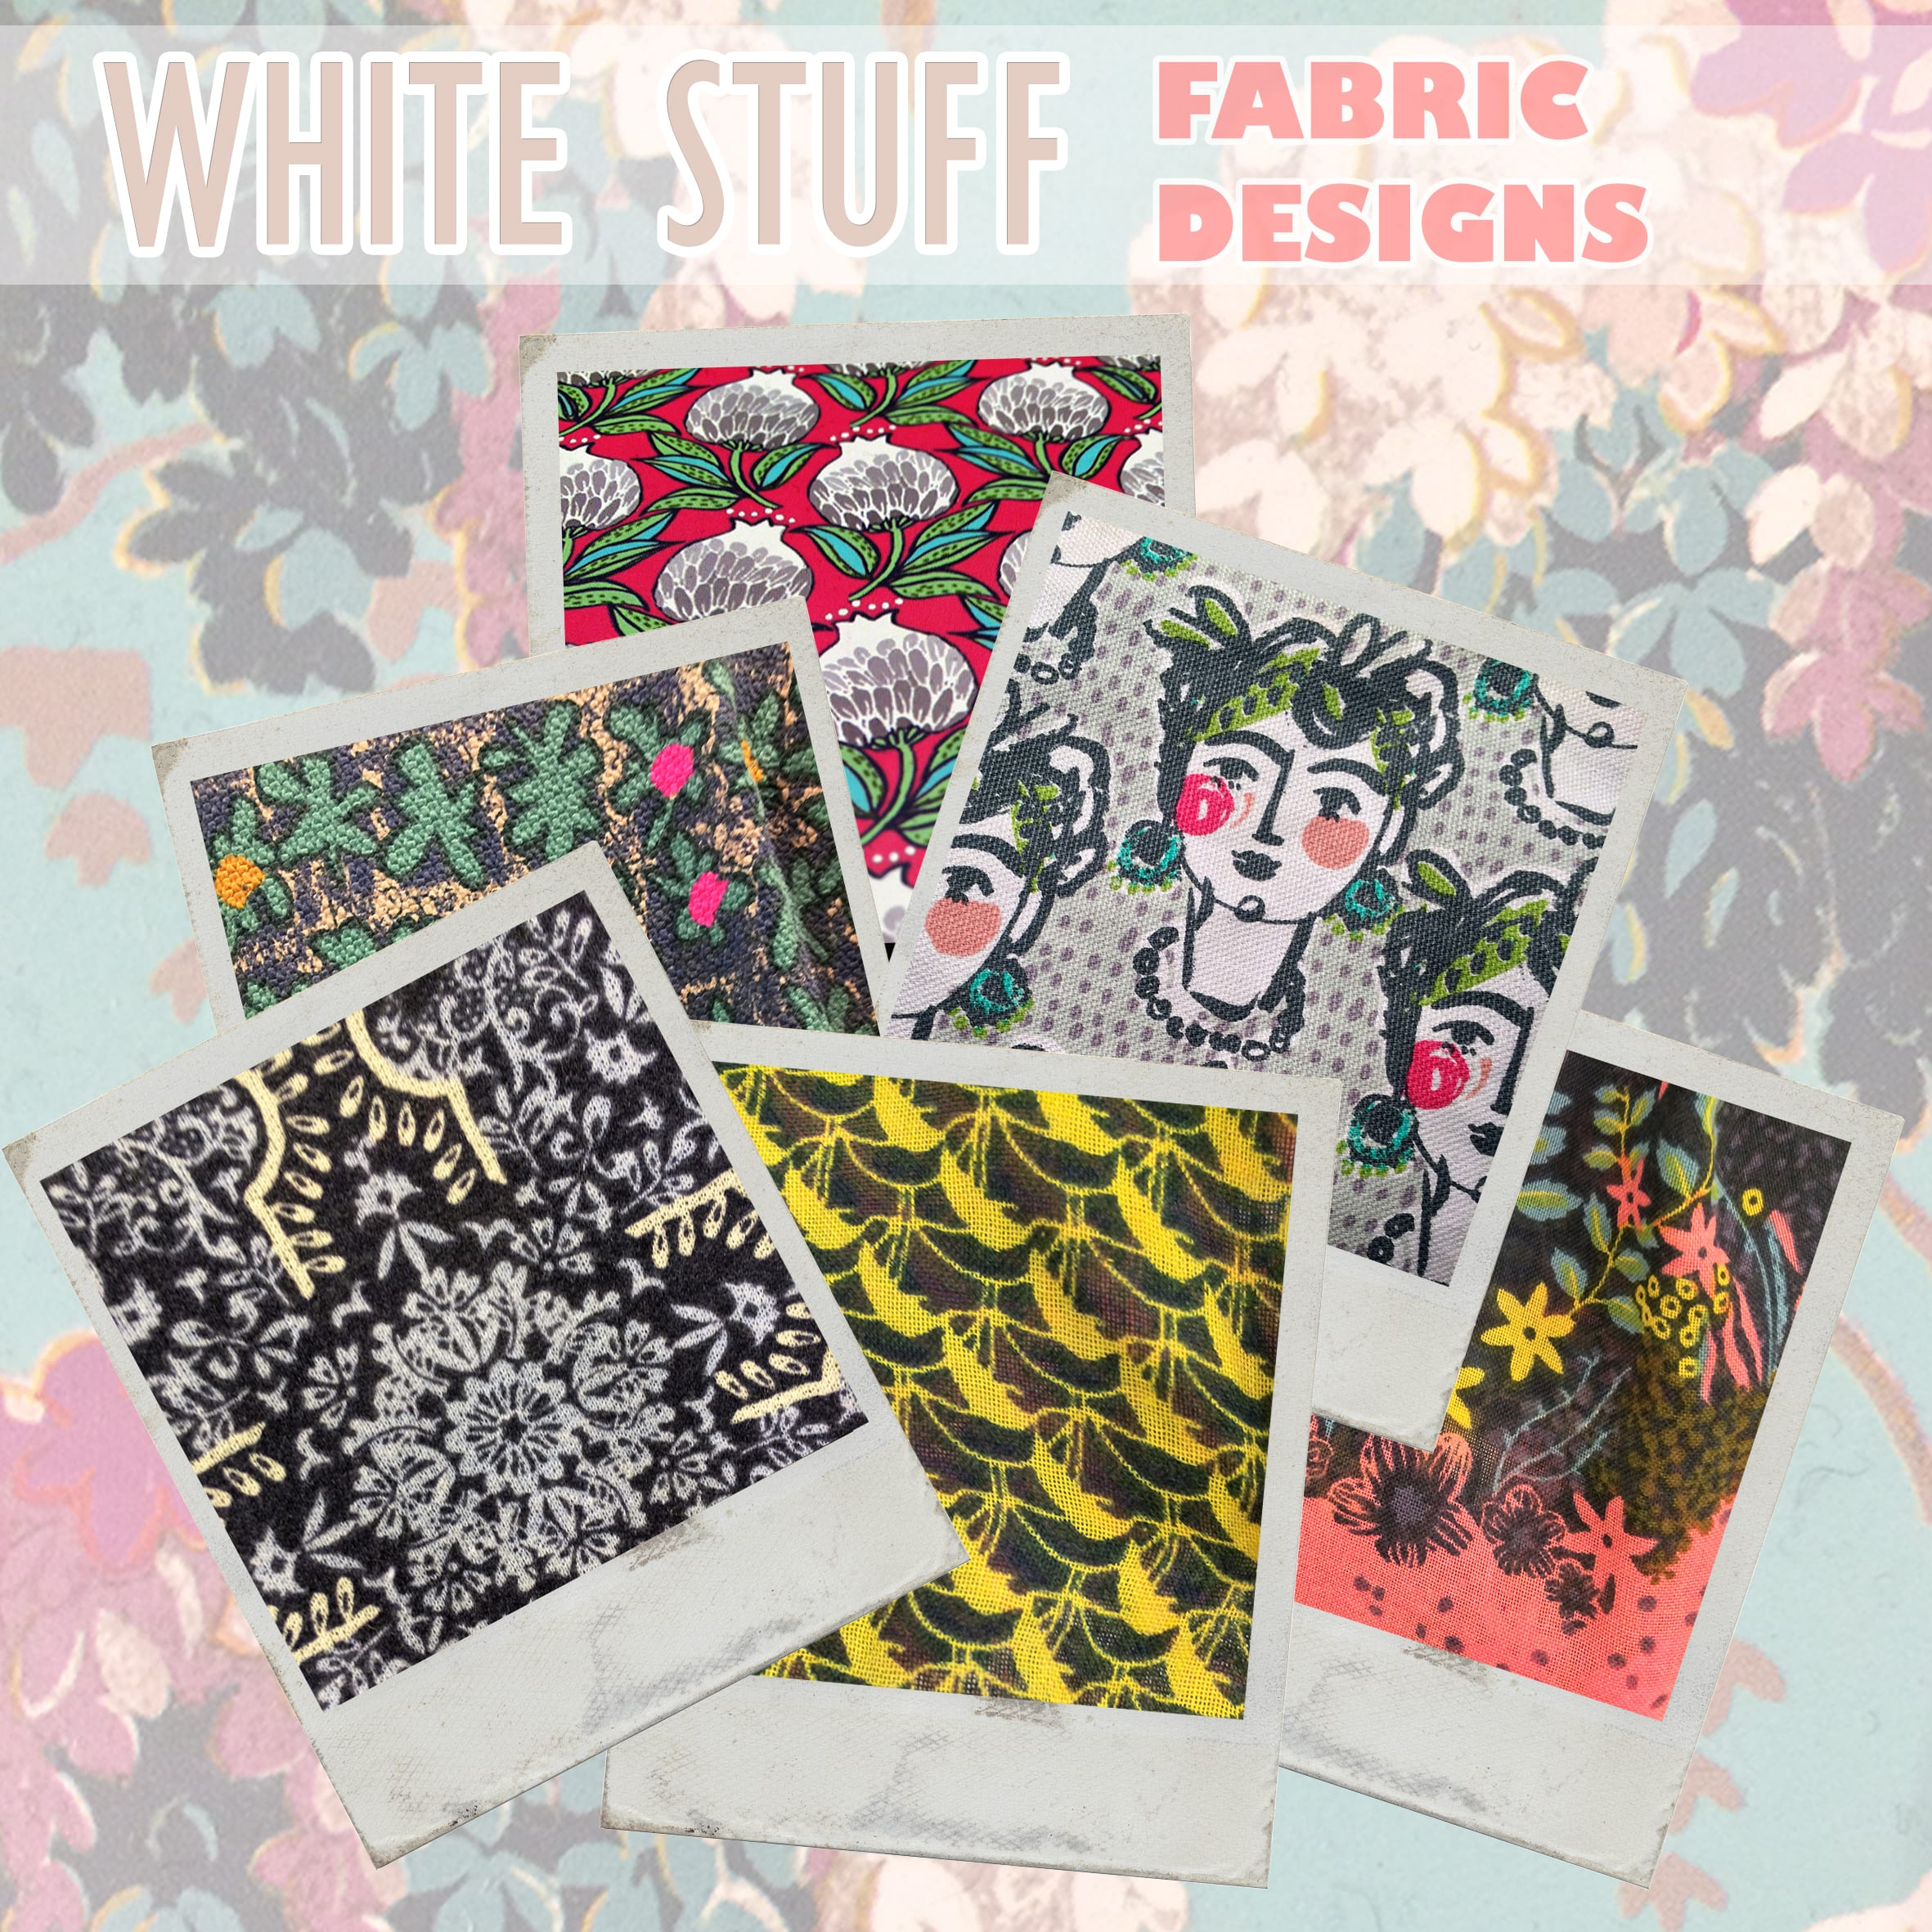 Creative Ideas Leicester: We Are An Official Charity Partner Of The White Stuff